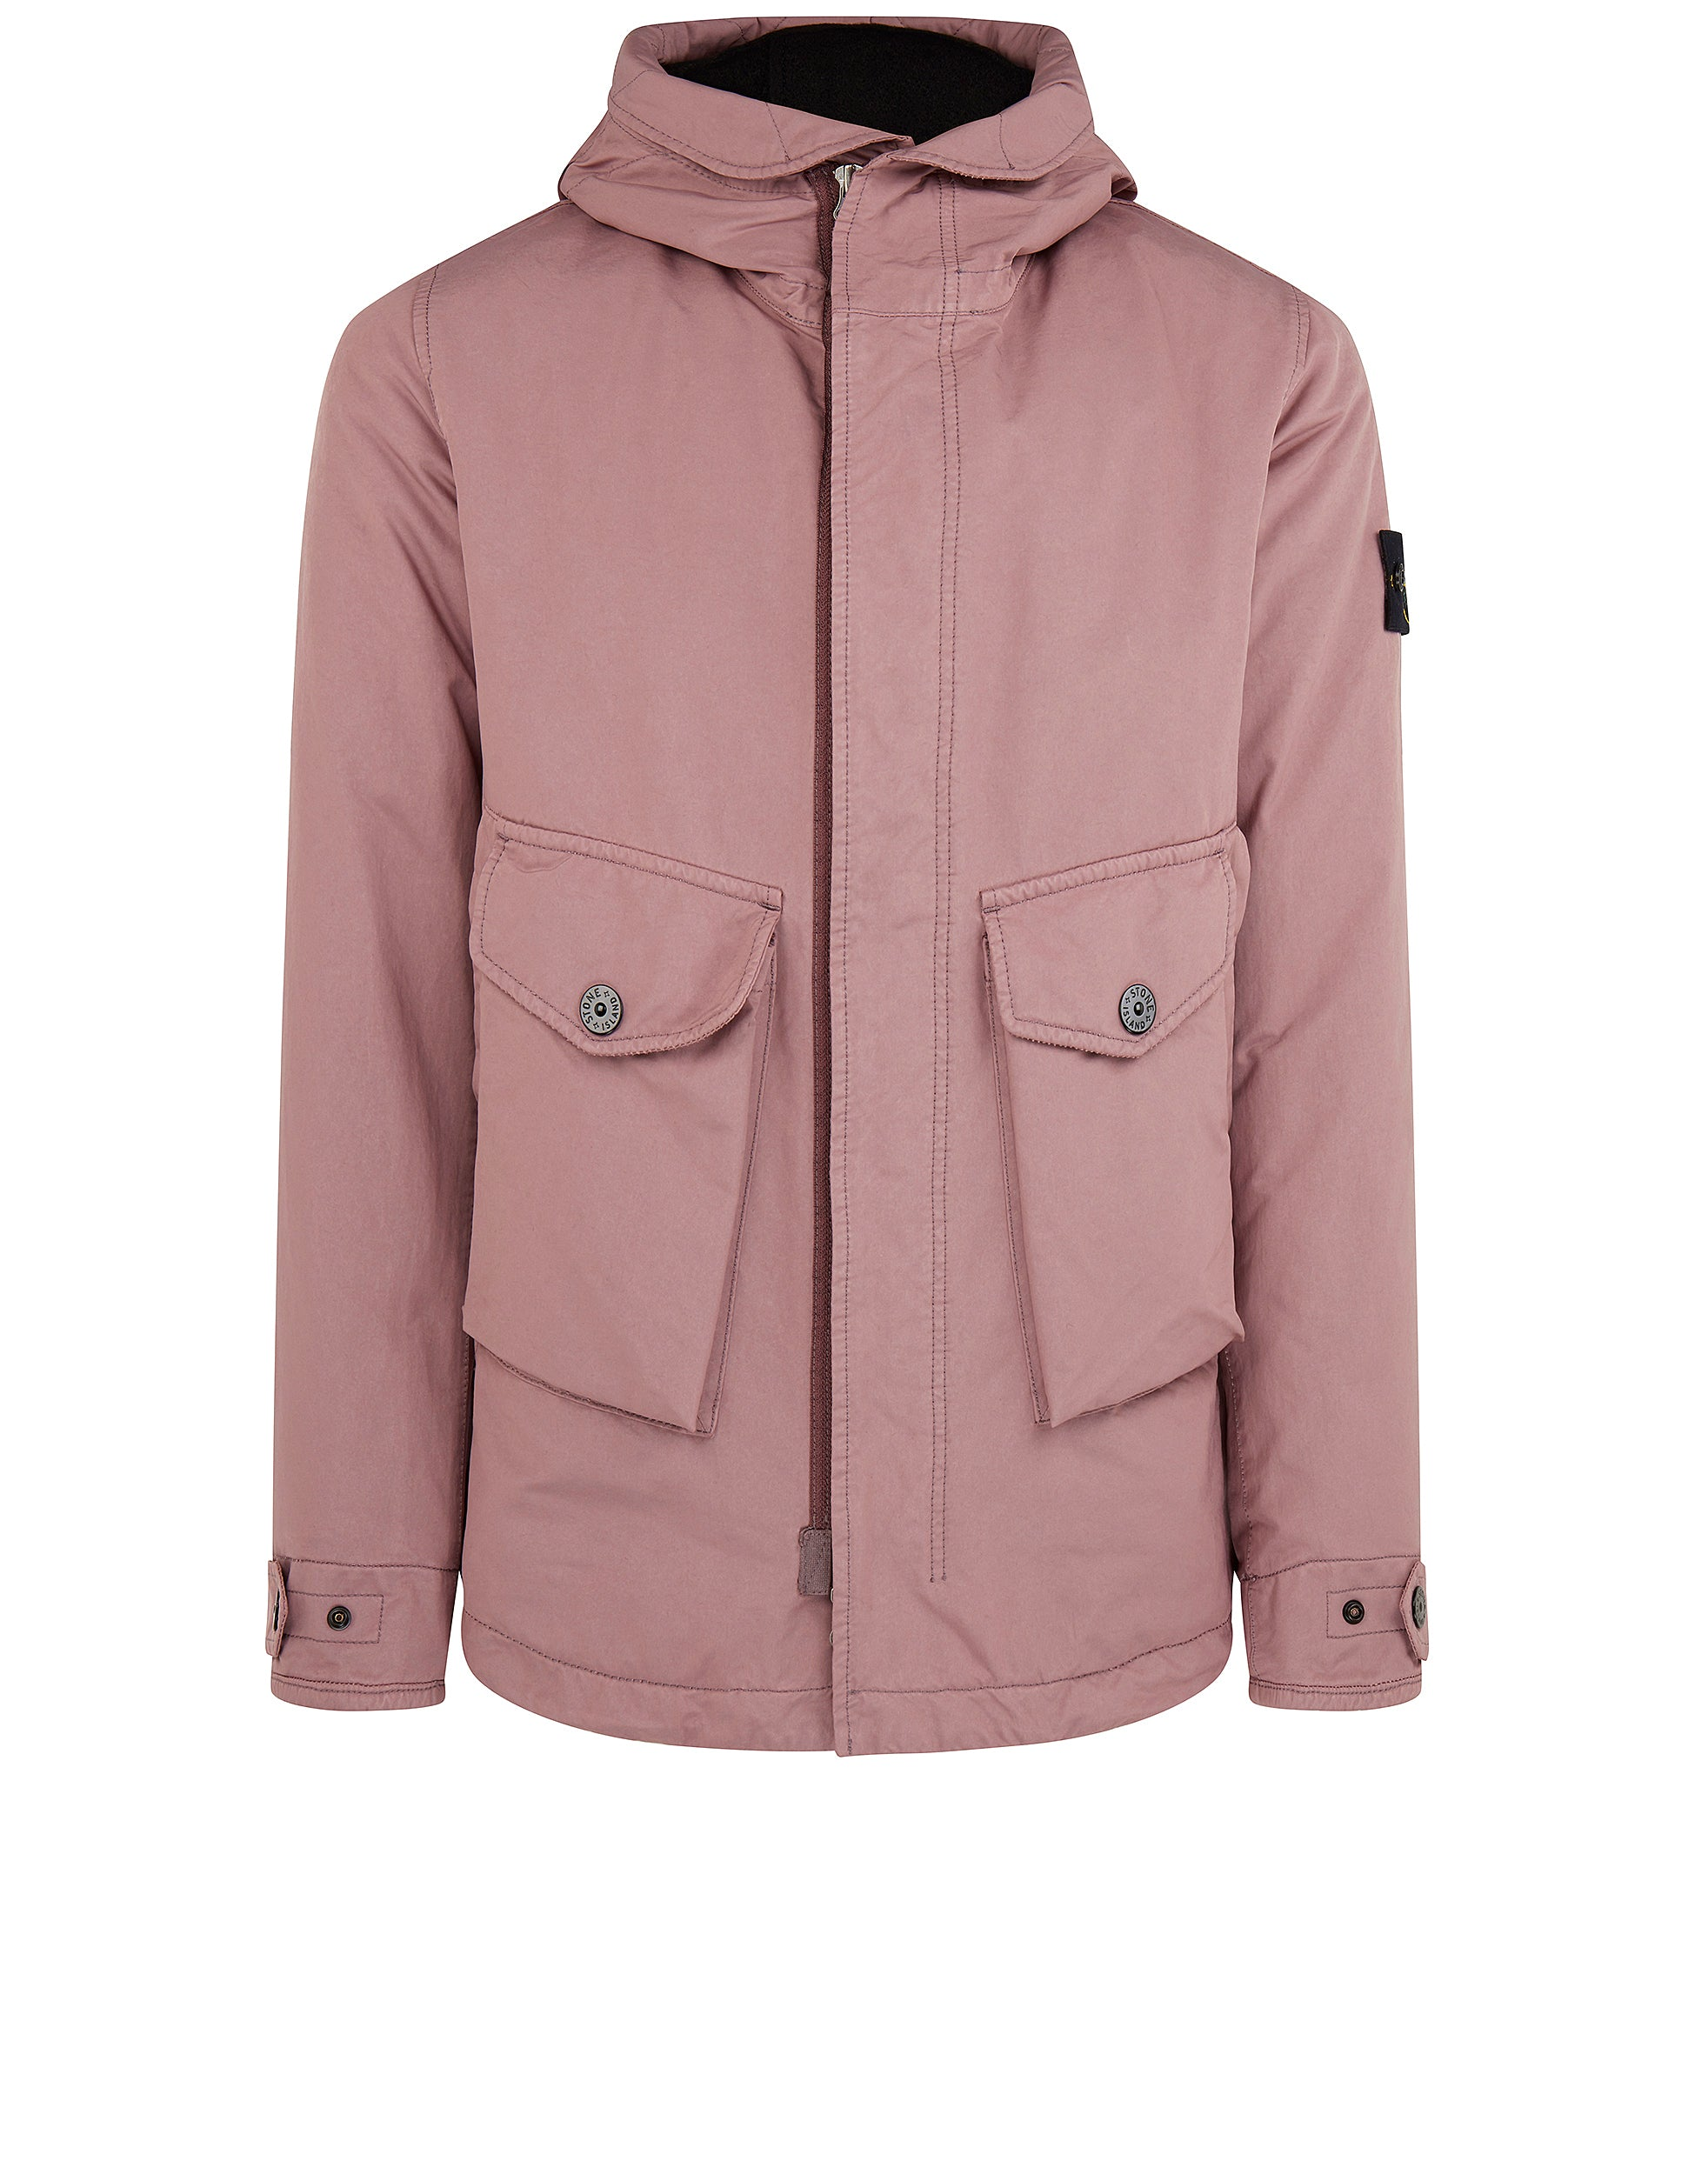 43249 DAVID-TC WITH PRIMALOFT® INSULATION TECHNOLOGY Jacket in Rose Quartz